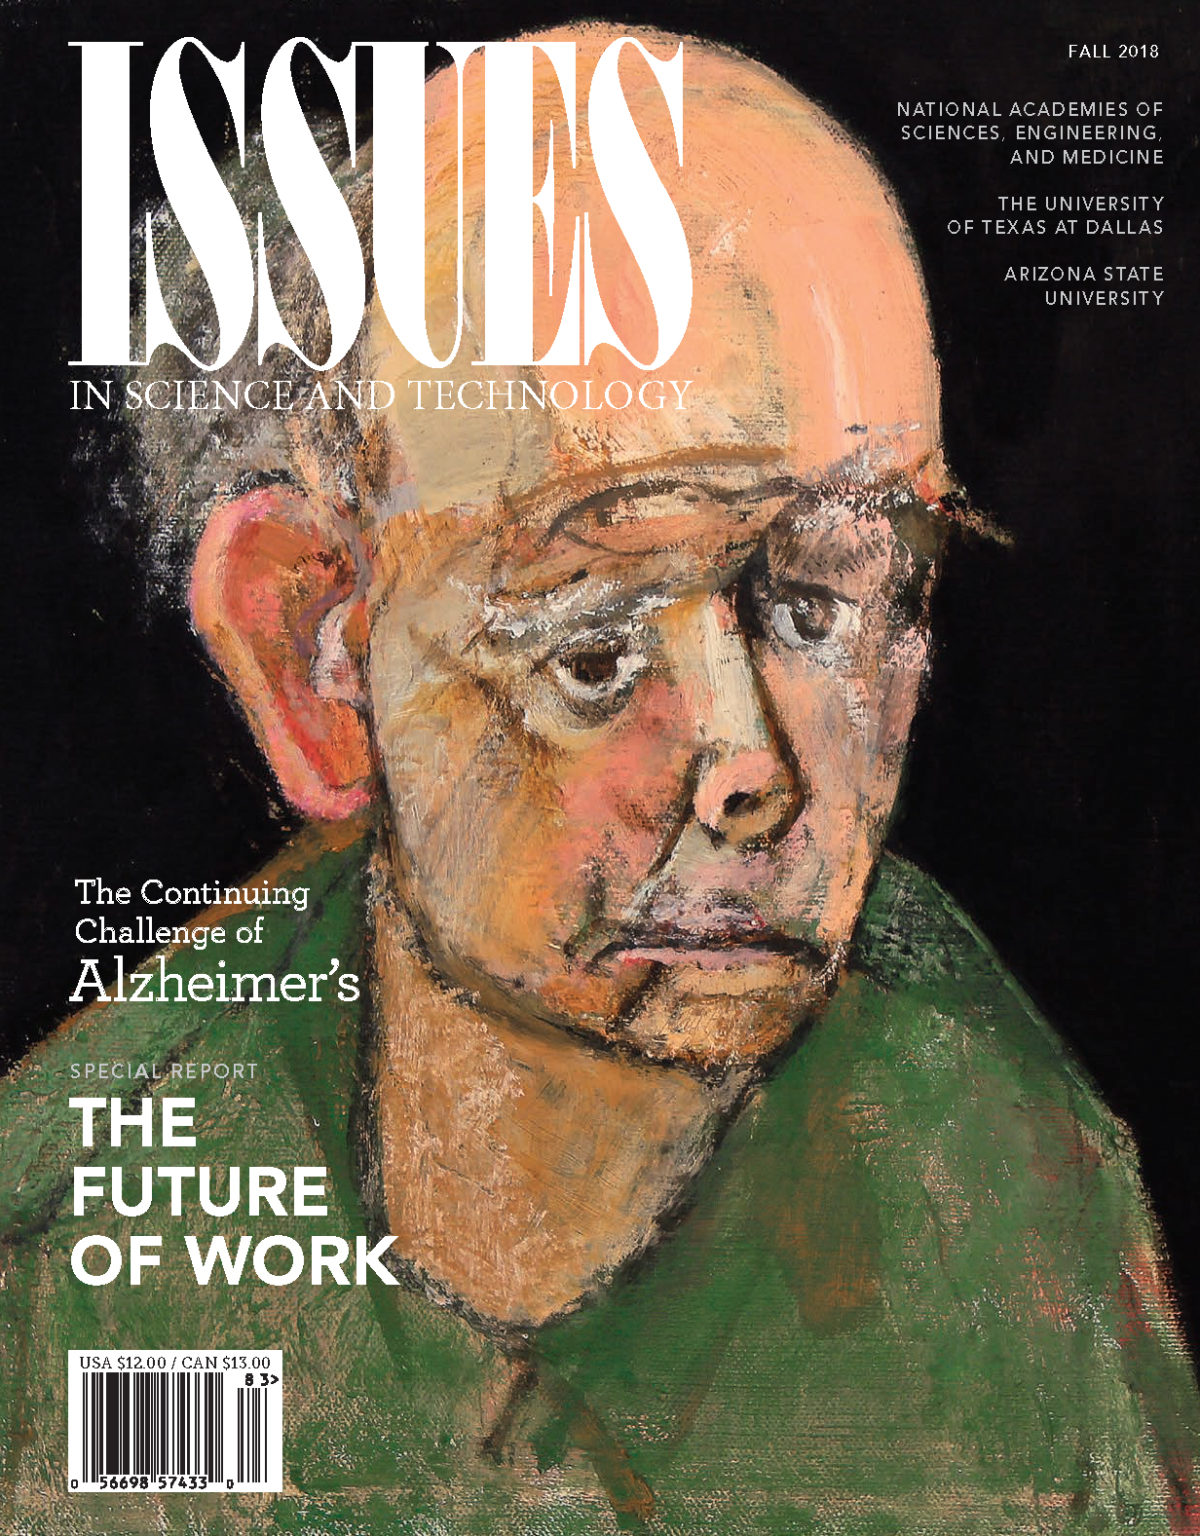 Magazine cover with an elderly man challenged by Alzheimer's